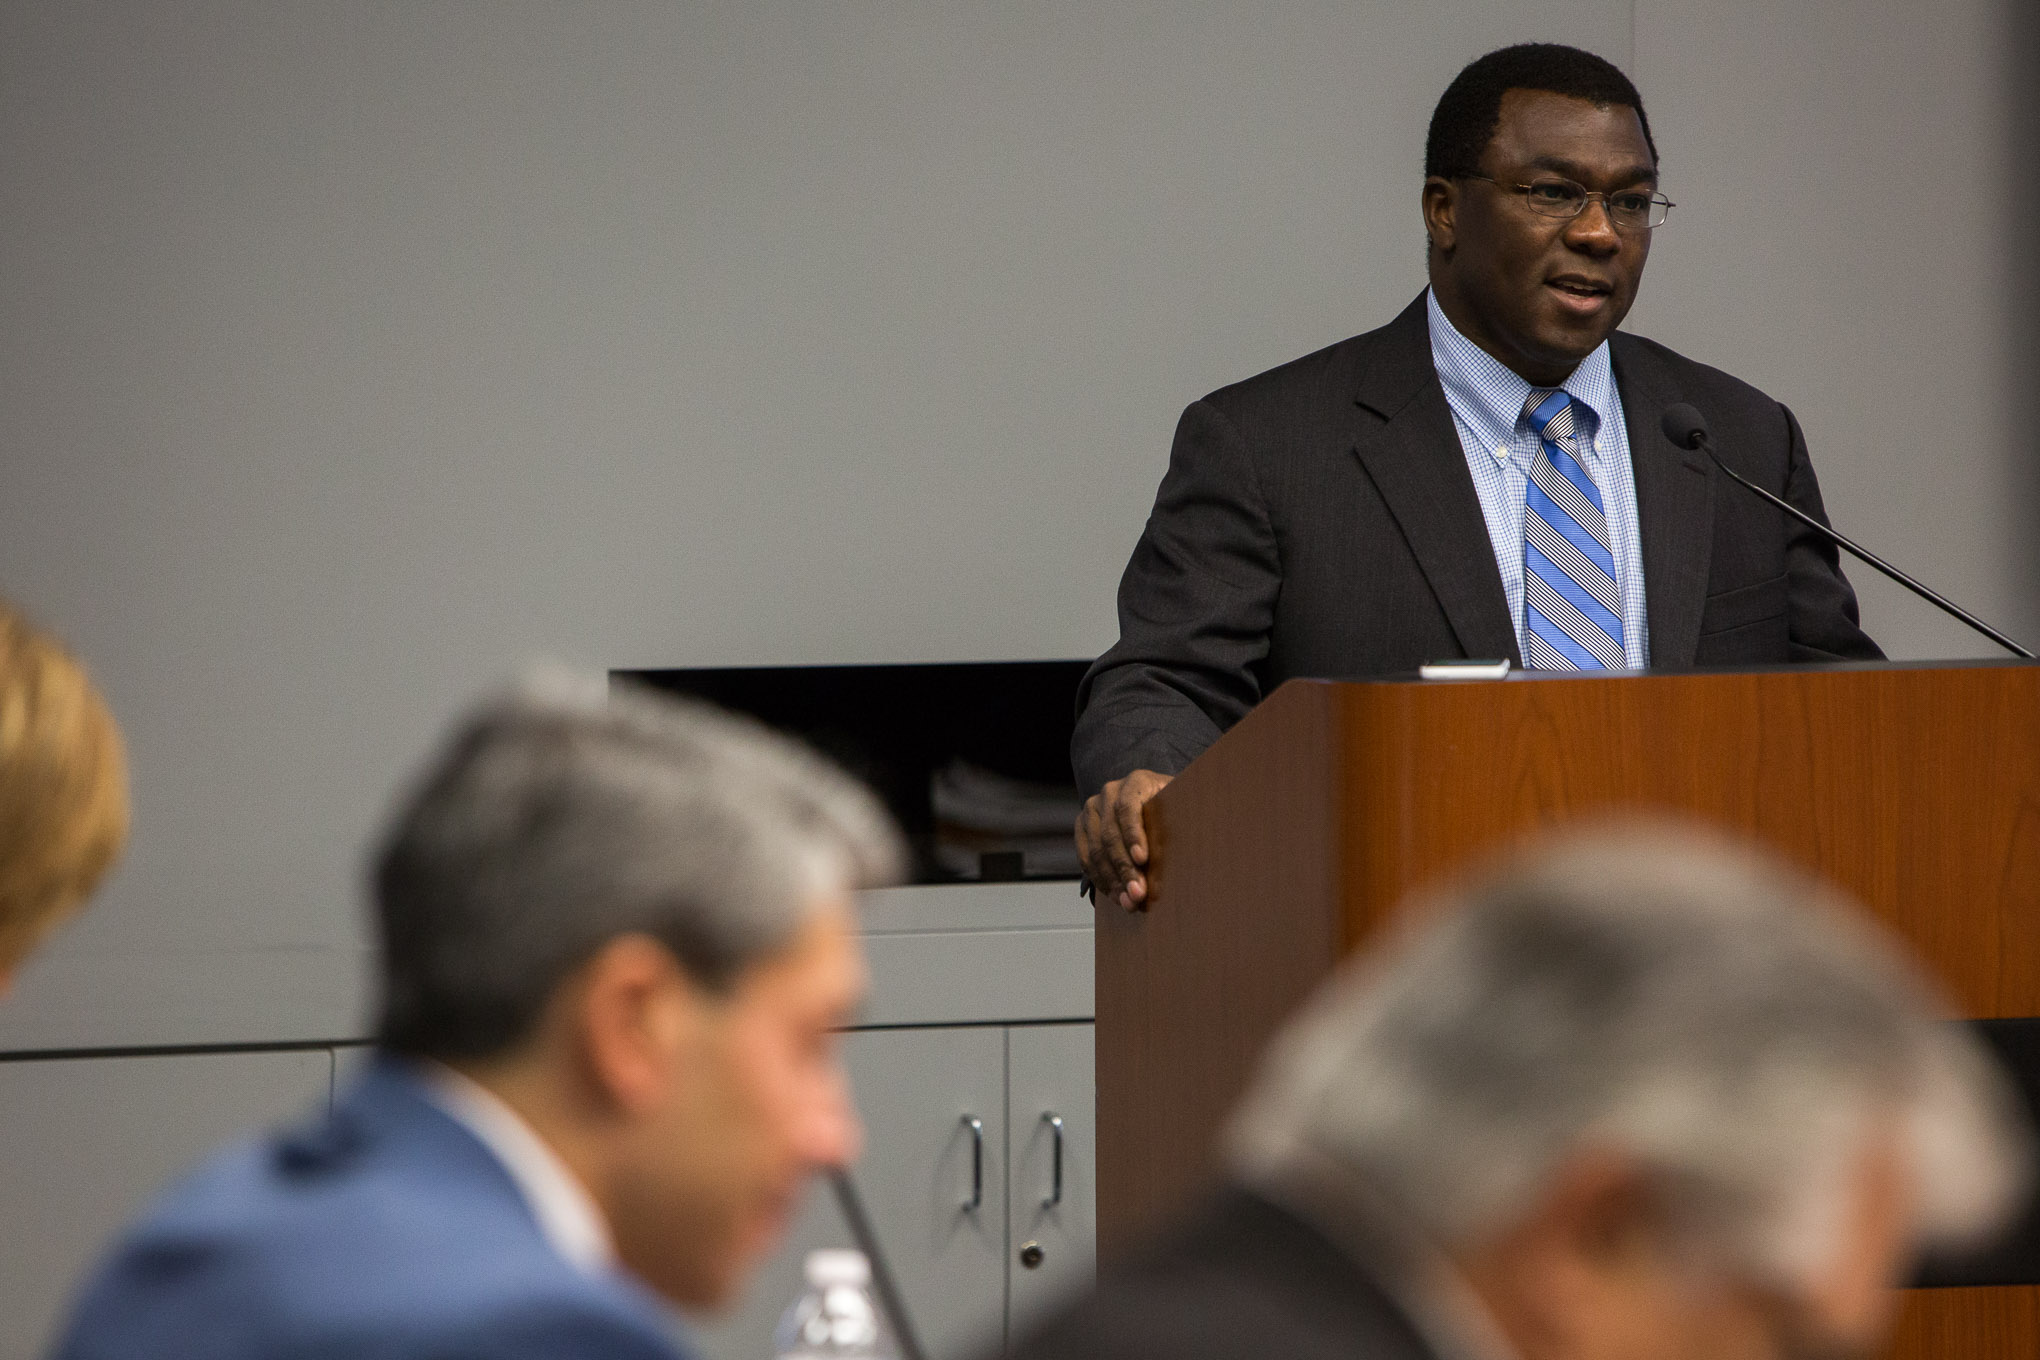 City of San Antonio EastPoint Director Mike Etienne highlights accomplishments from the program. Photo by Scott Ball.